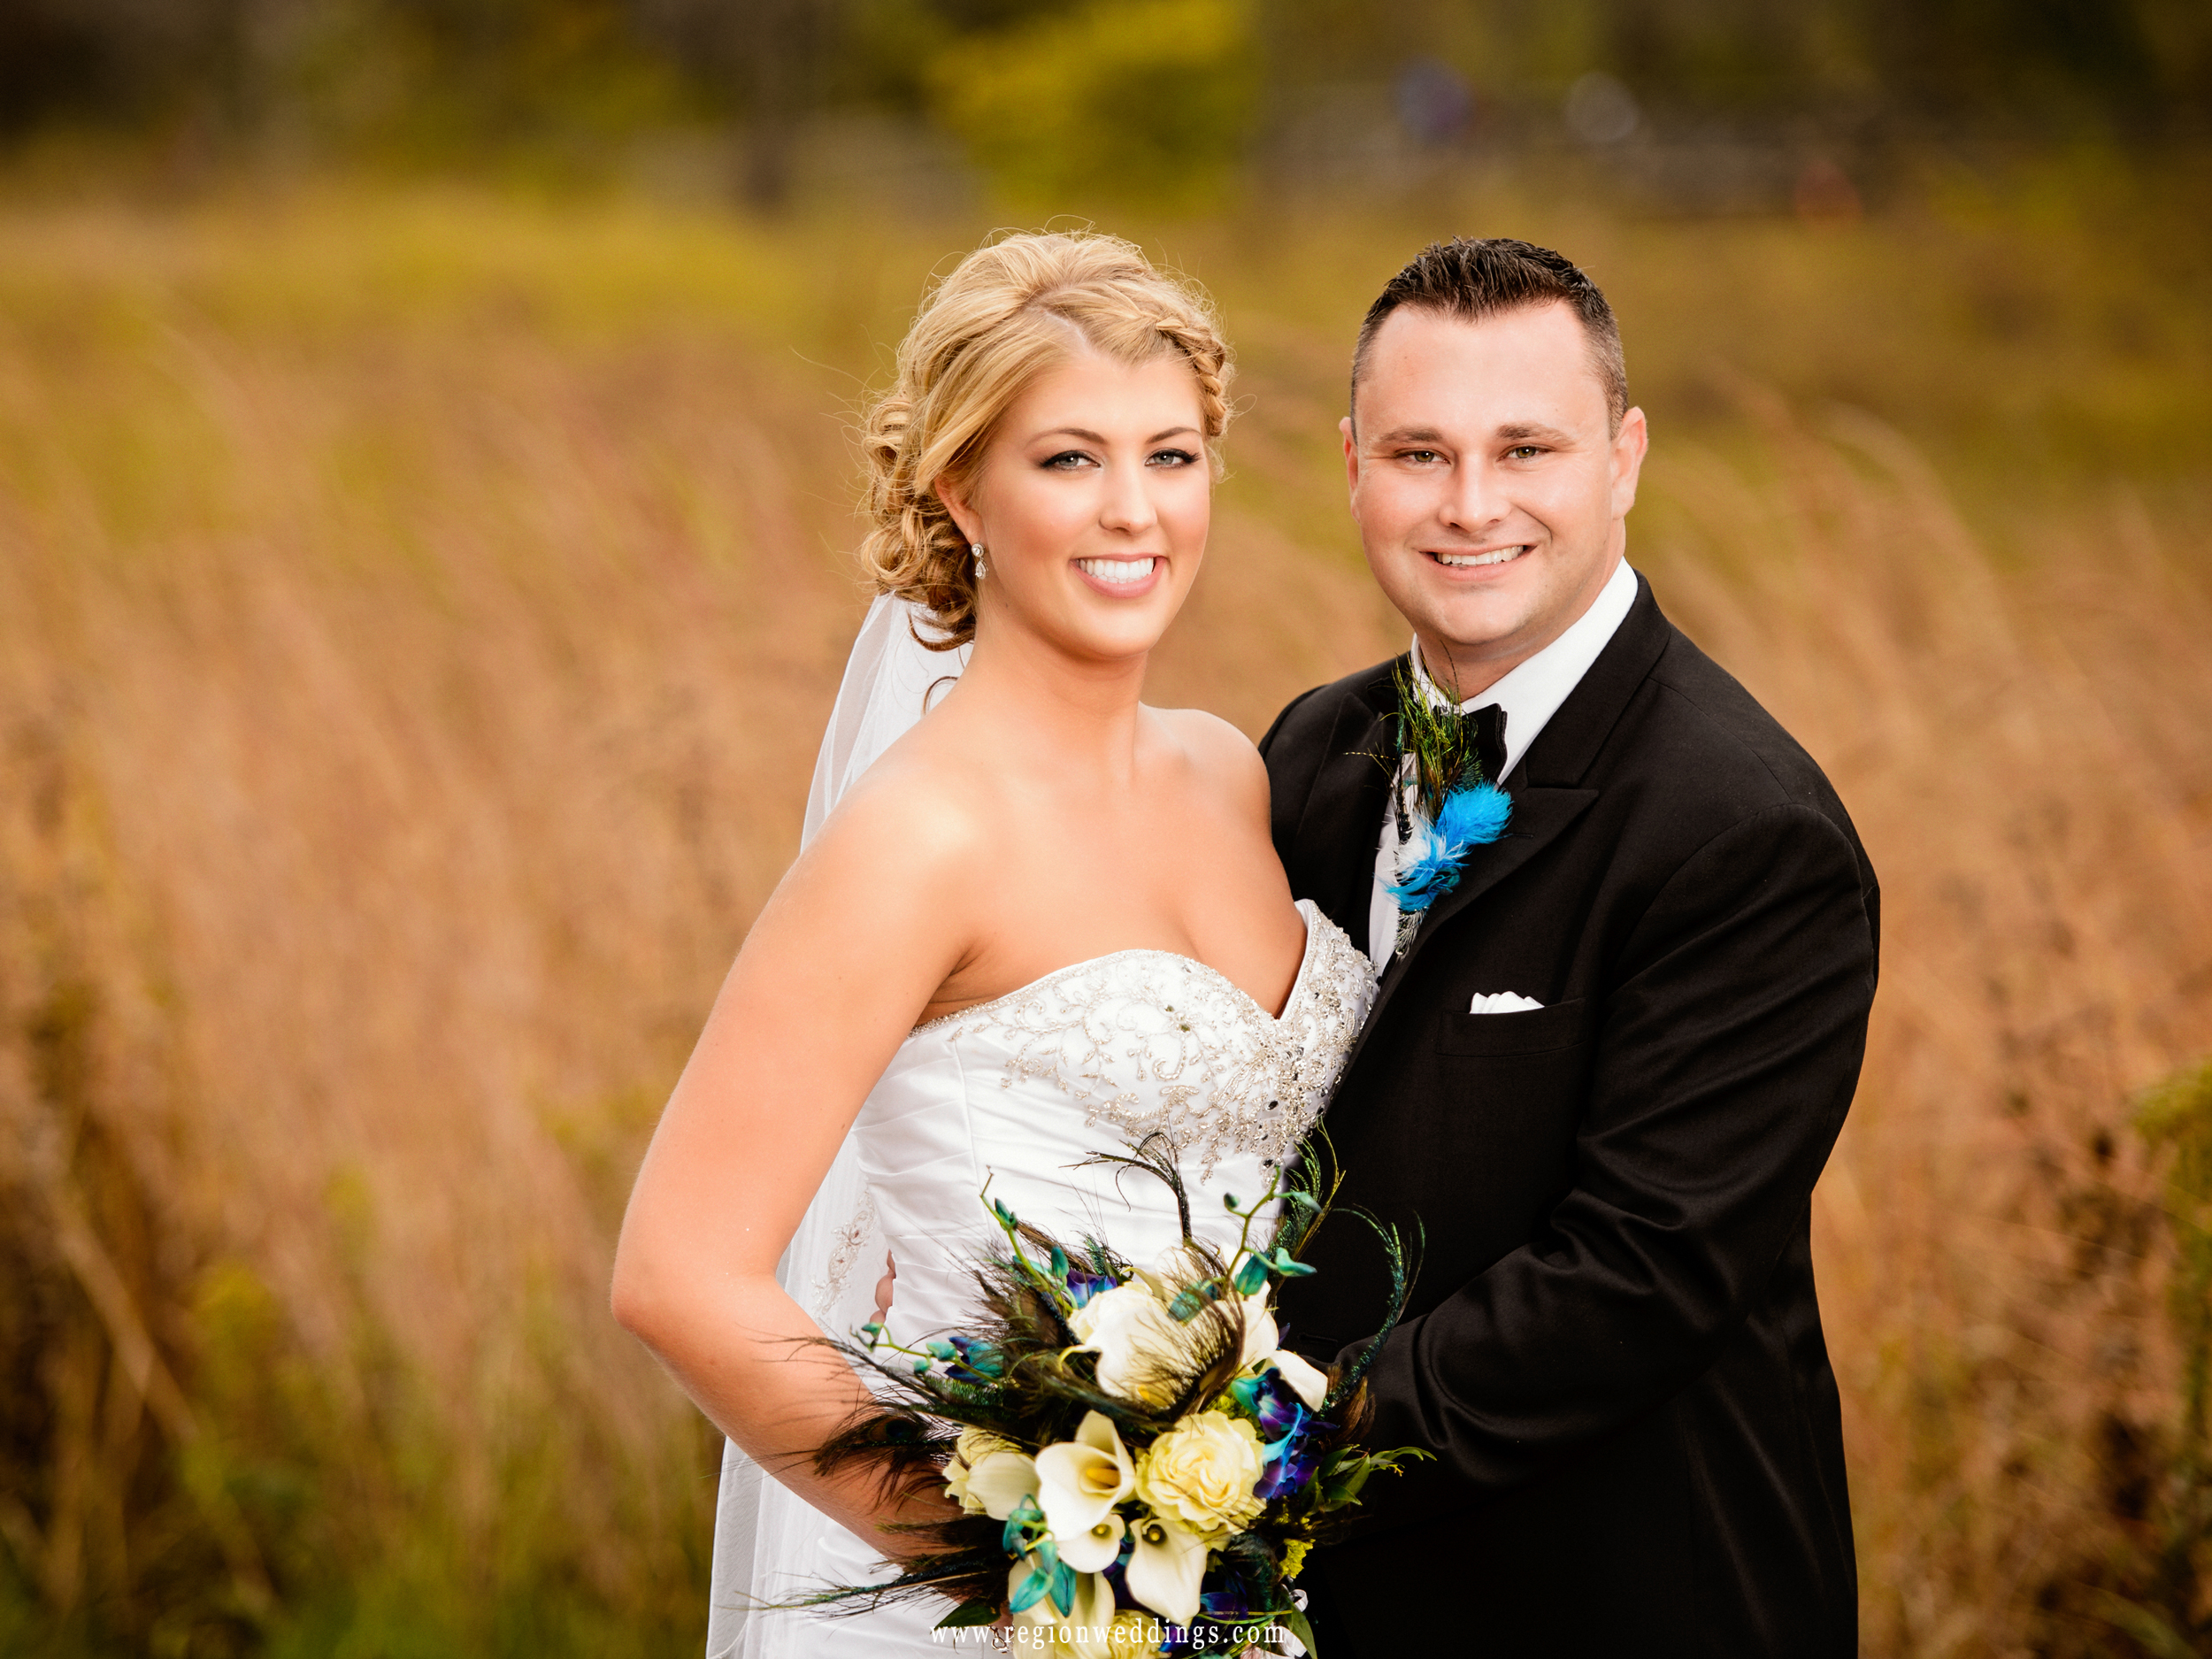 A bride and groom portrait in front of the golden wildflowers at Coffee Creek Park.